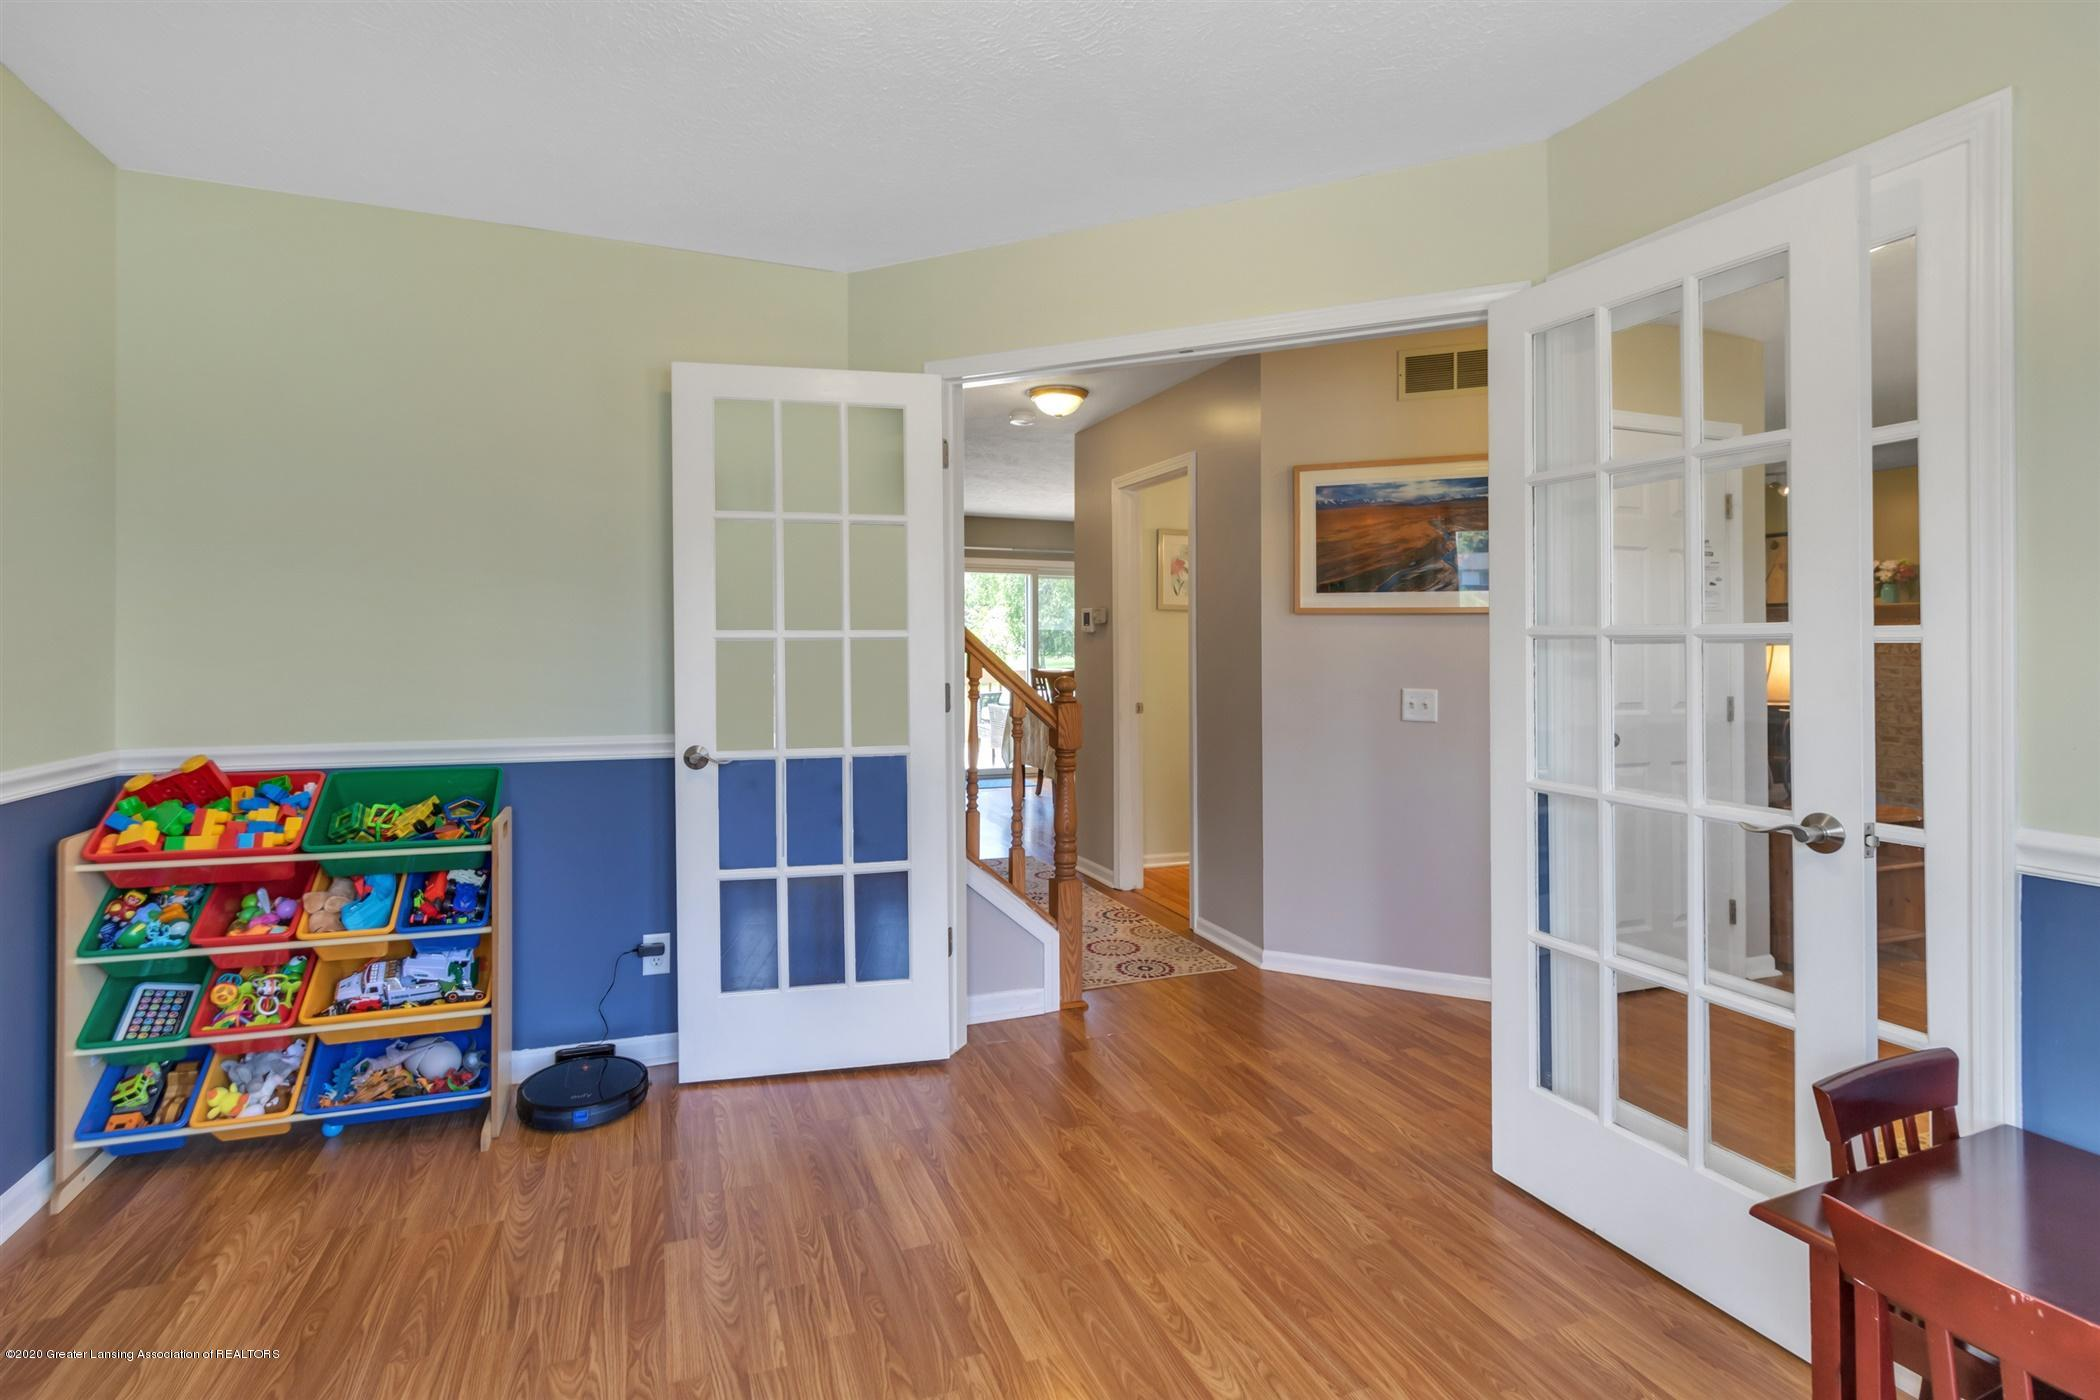 2945 Whistlewood Way - 08-2945Whistlewood-WindowStill-Real - 8